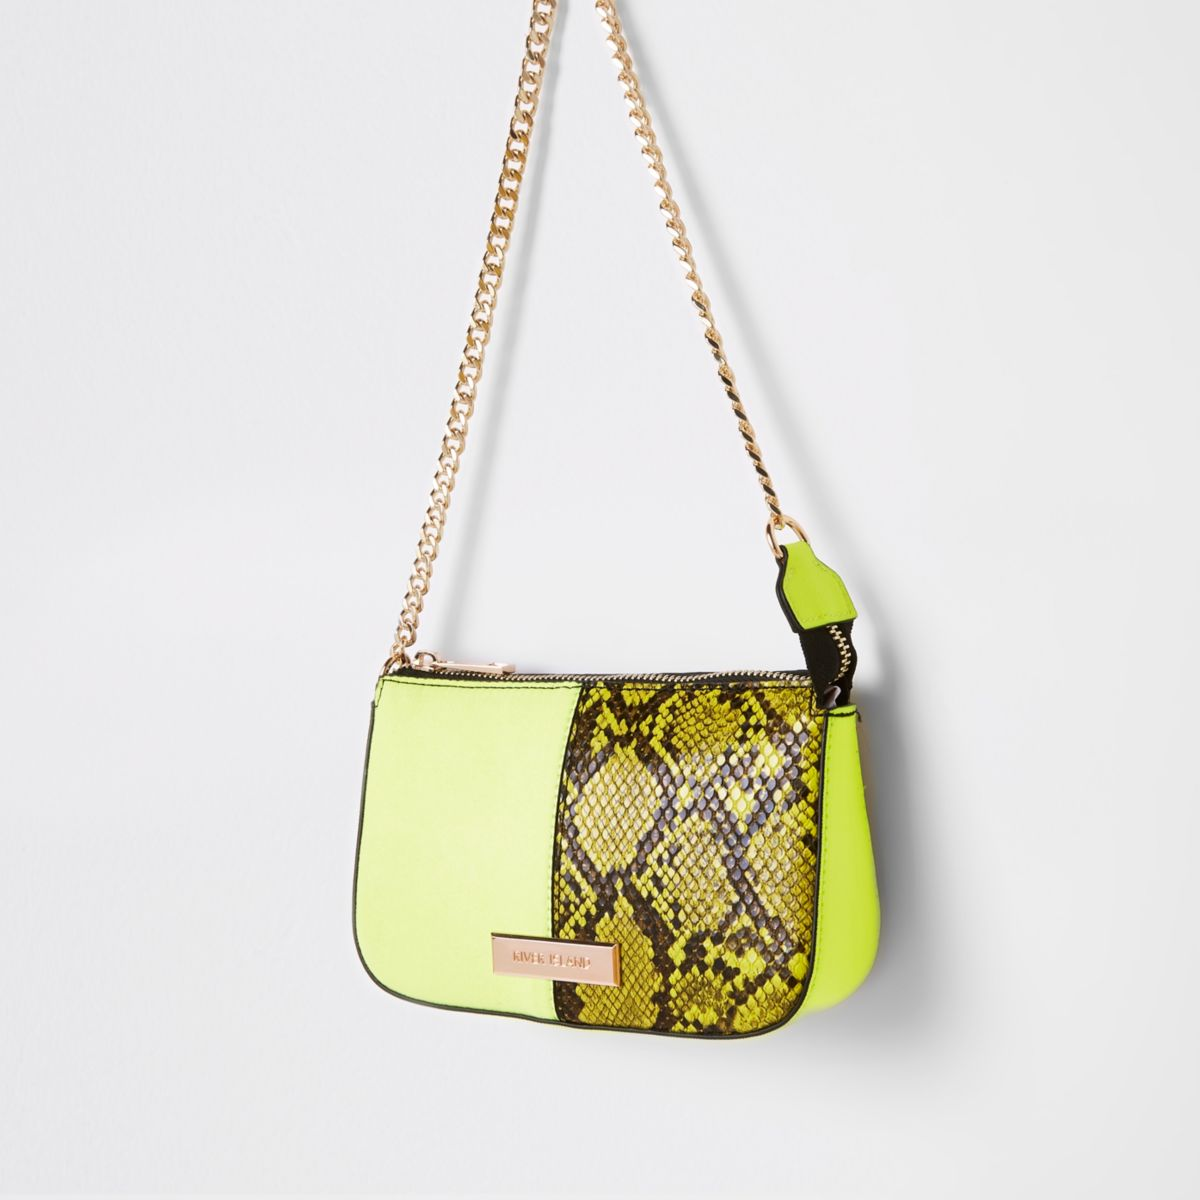 Neon green underarm mini bag